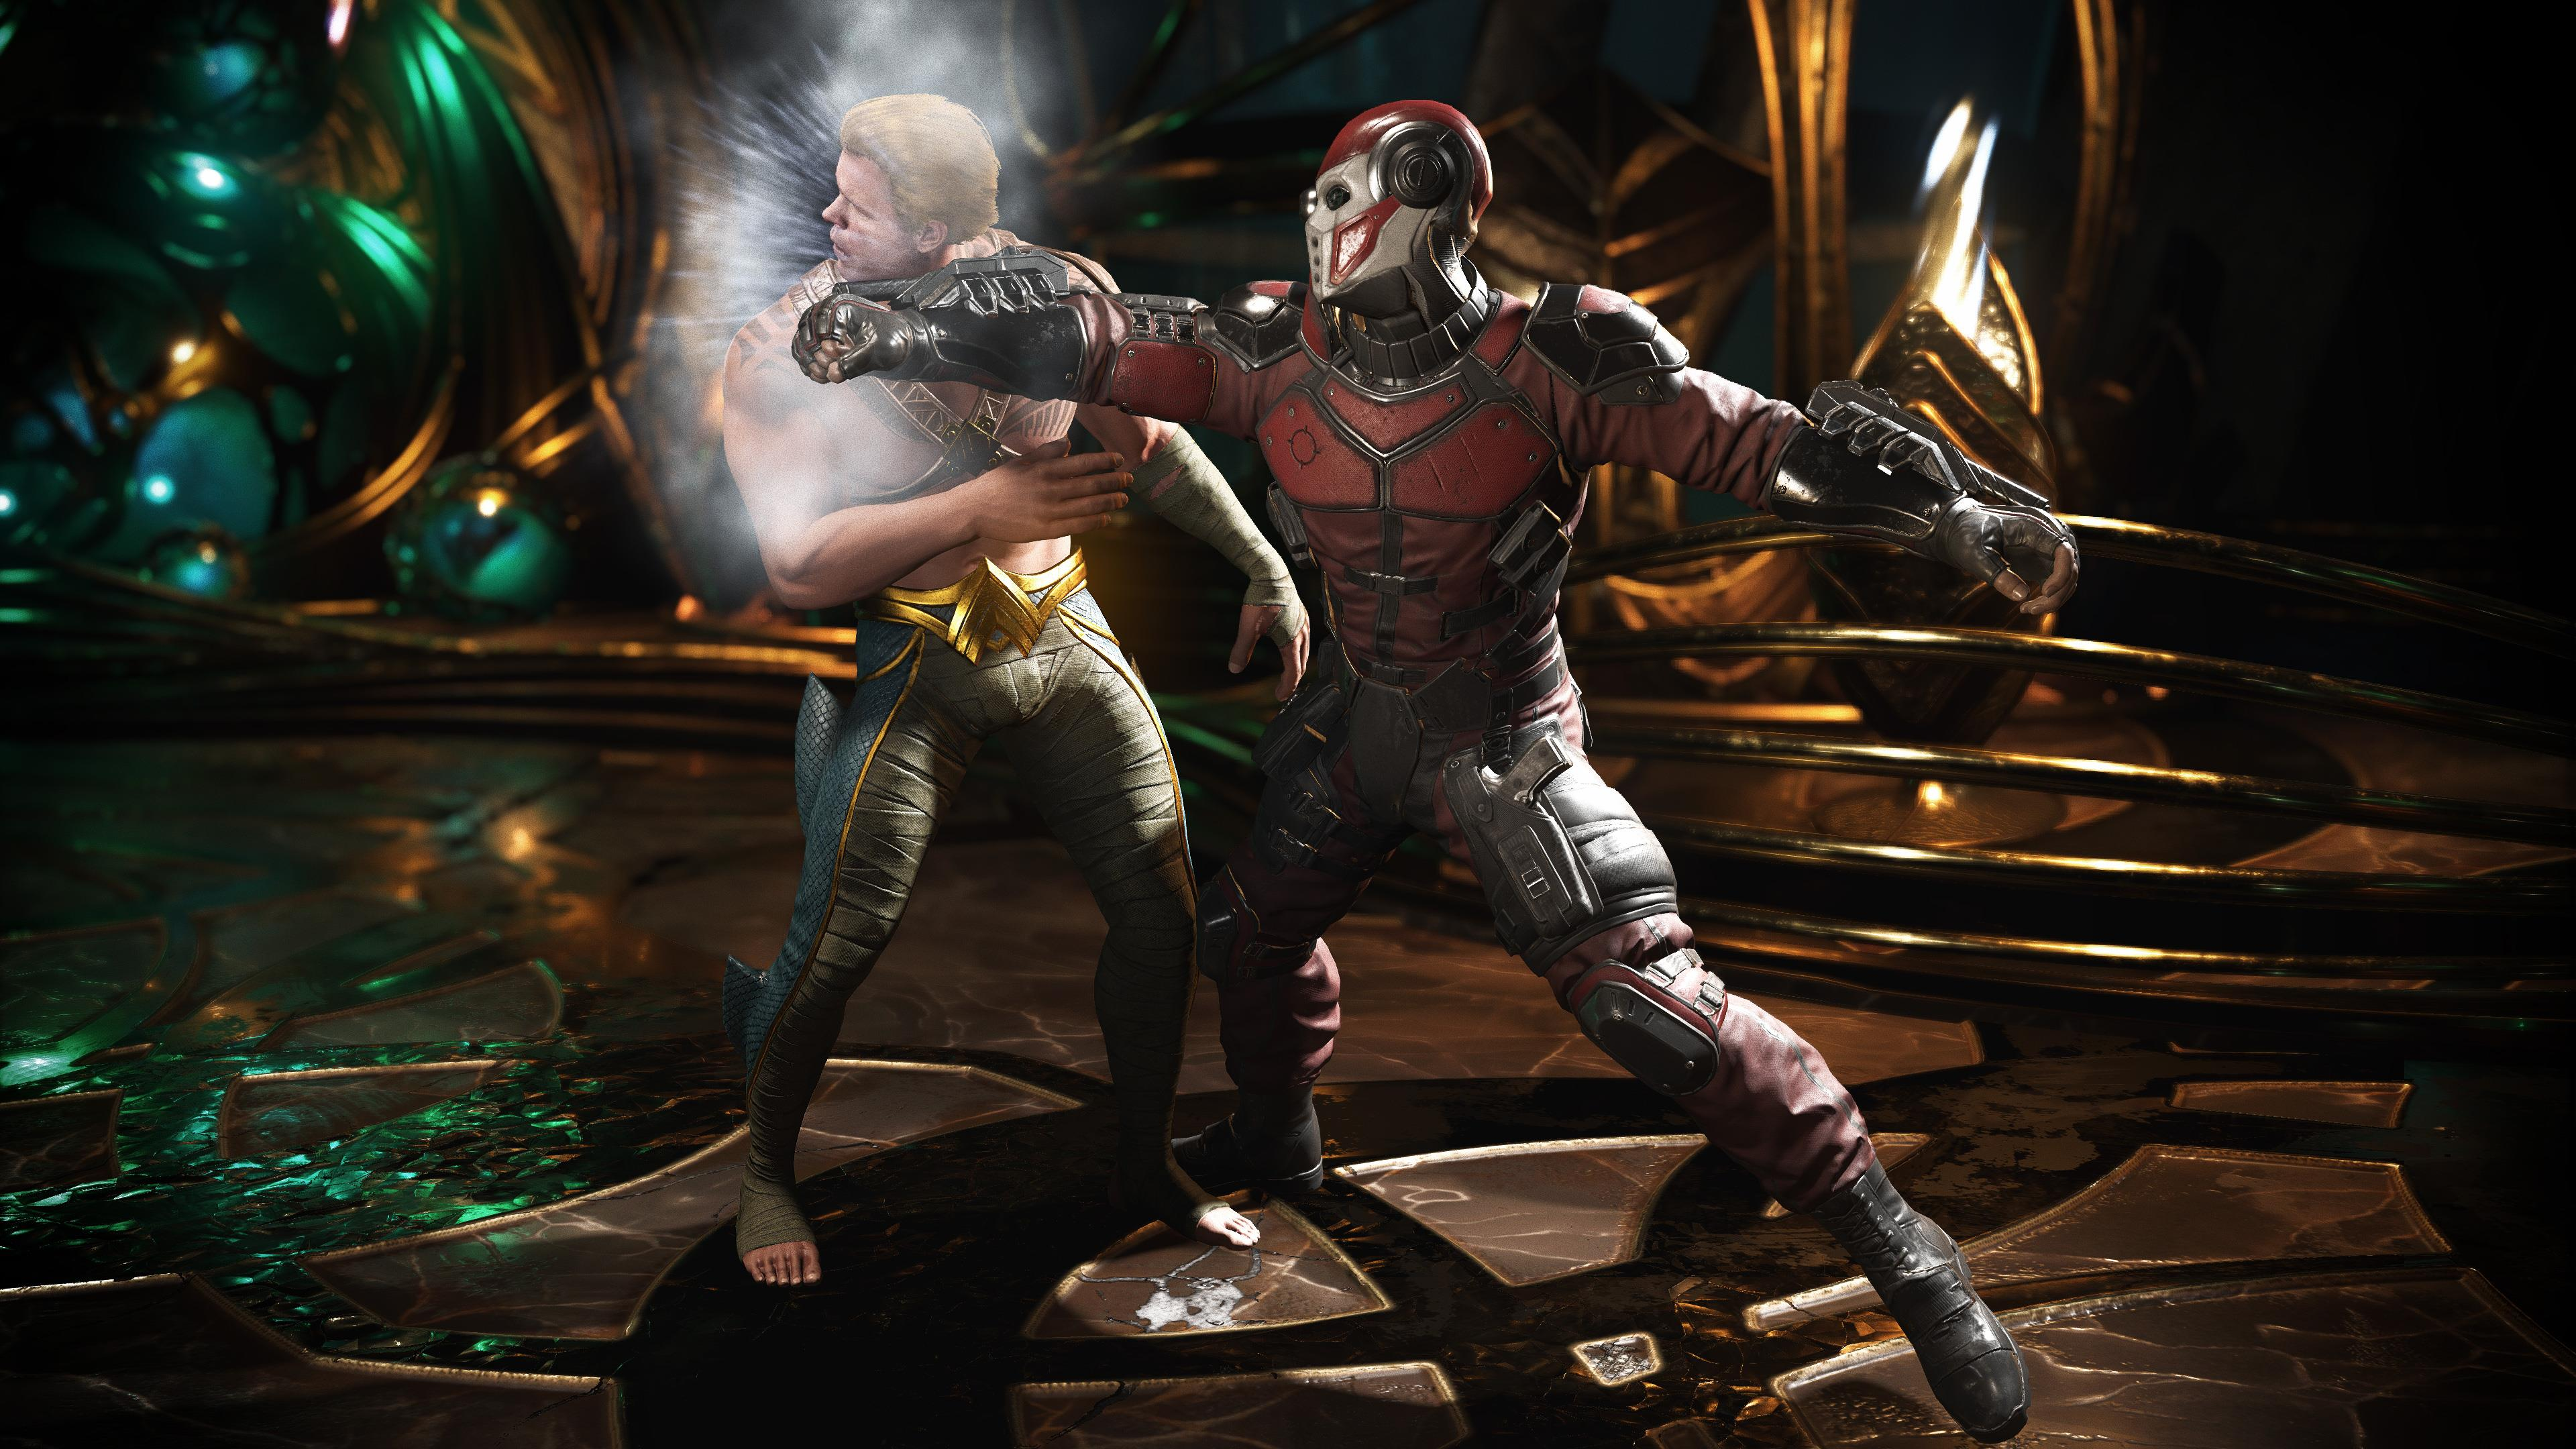 injustice-2-screenshot-(7)